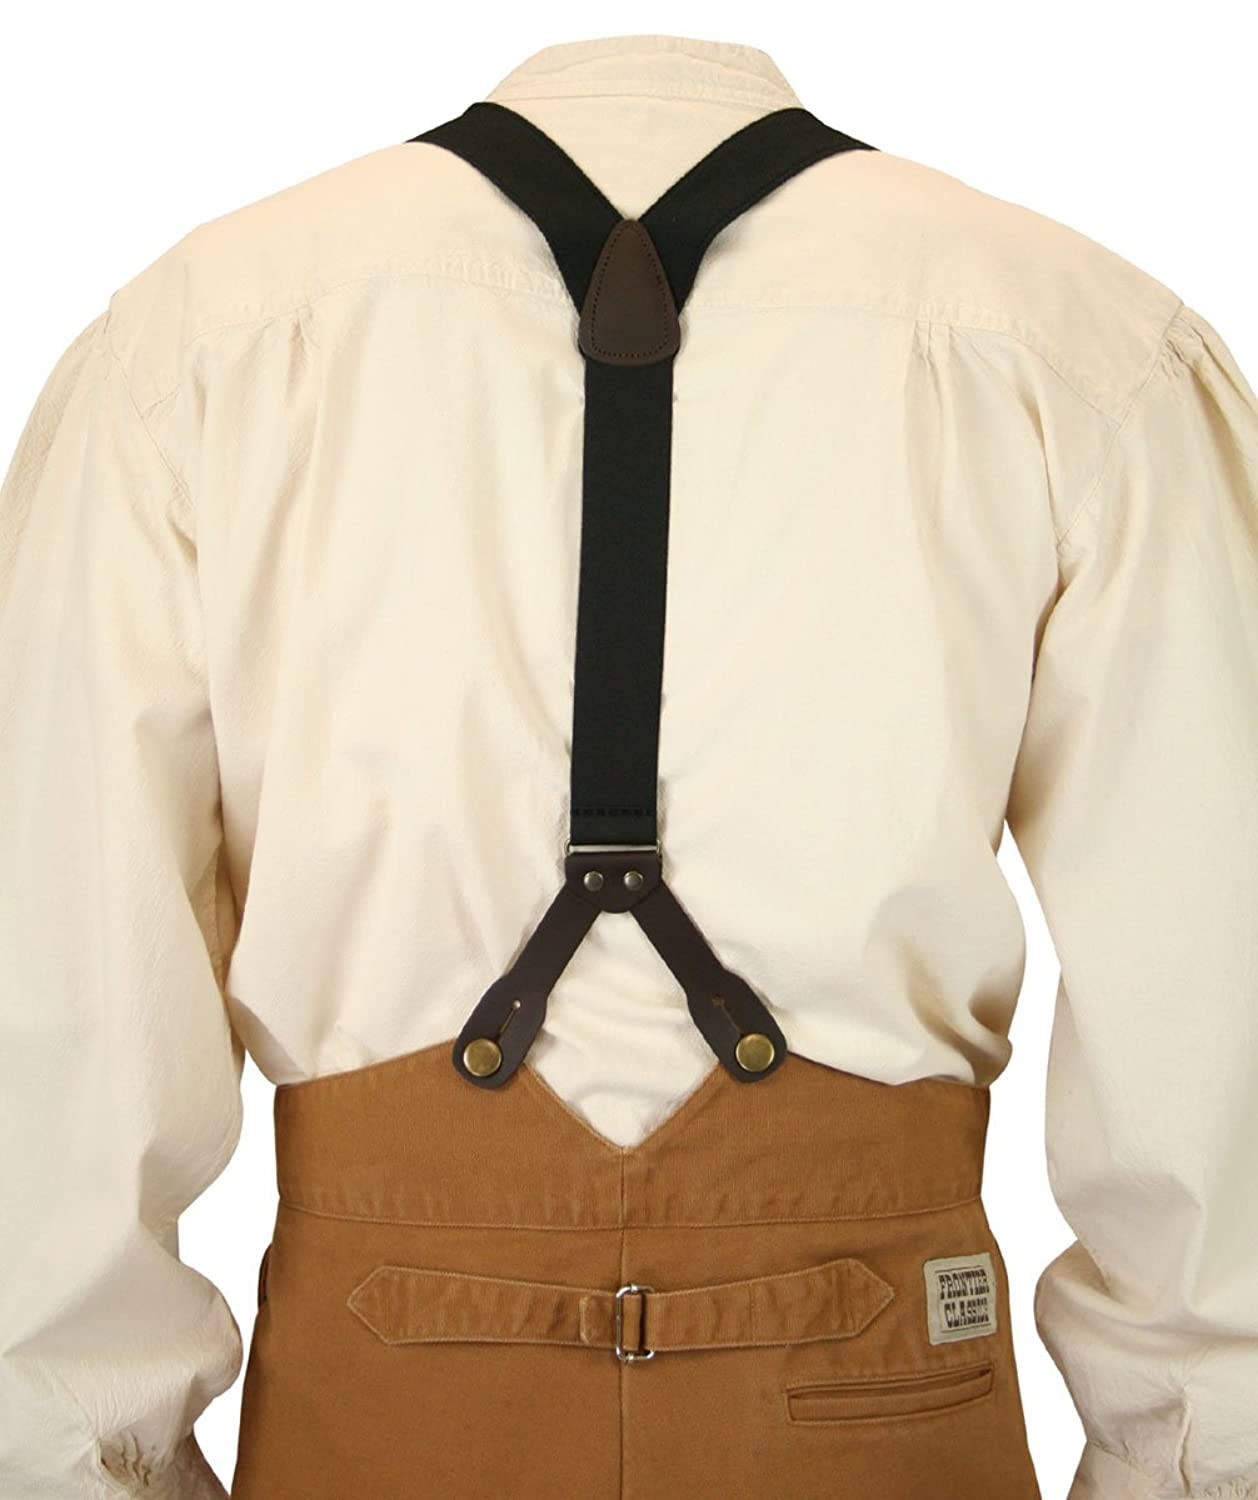 Men's Steampunk Clothing, Costumes, Fashion Historical Emporium Mens Canvas Stagecoach Y-Back Suspenders $27.95 AT vintagedancer.com